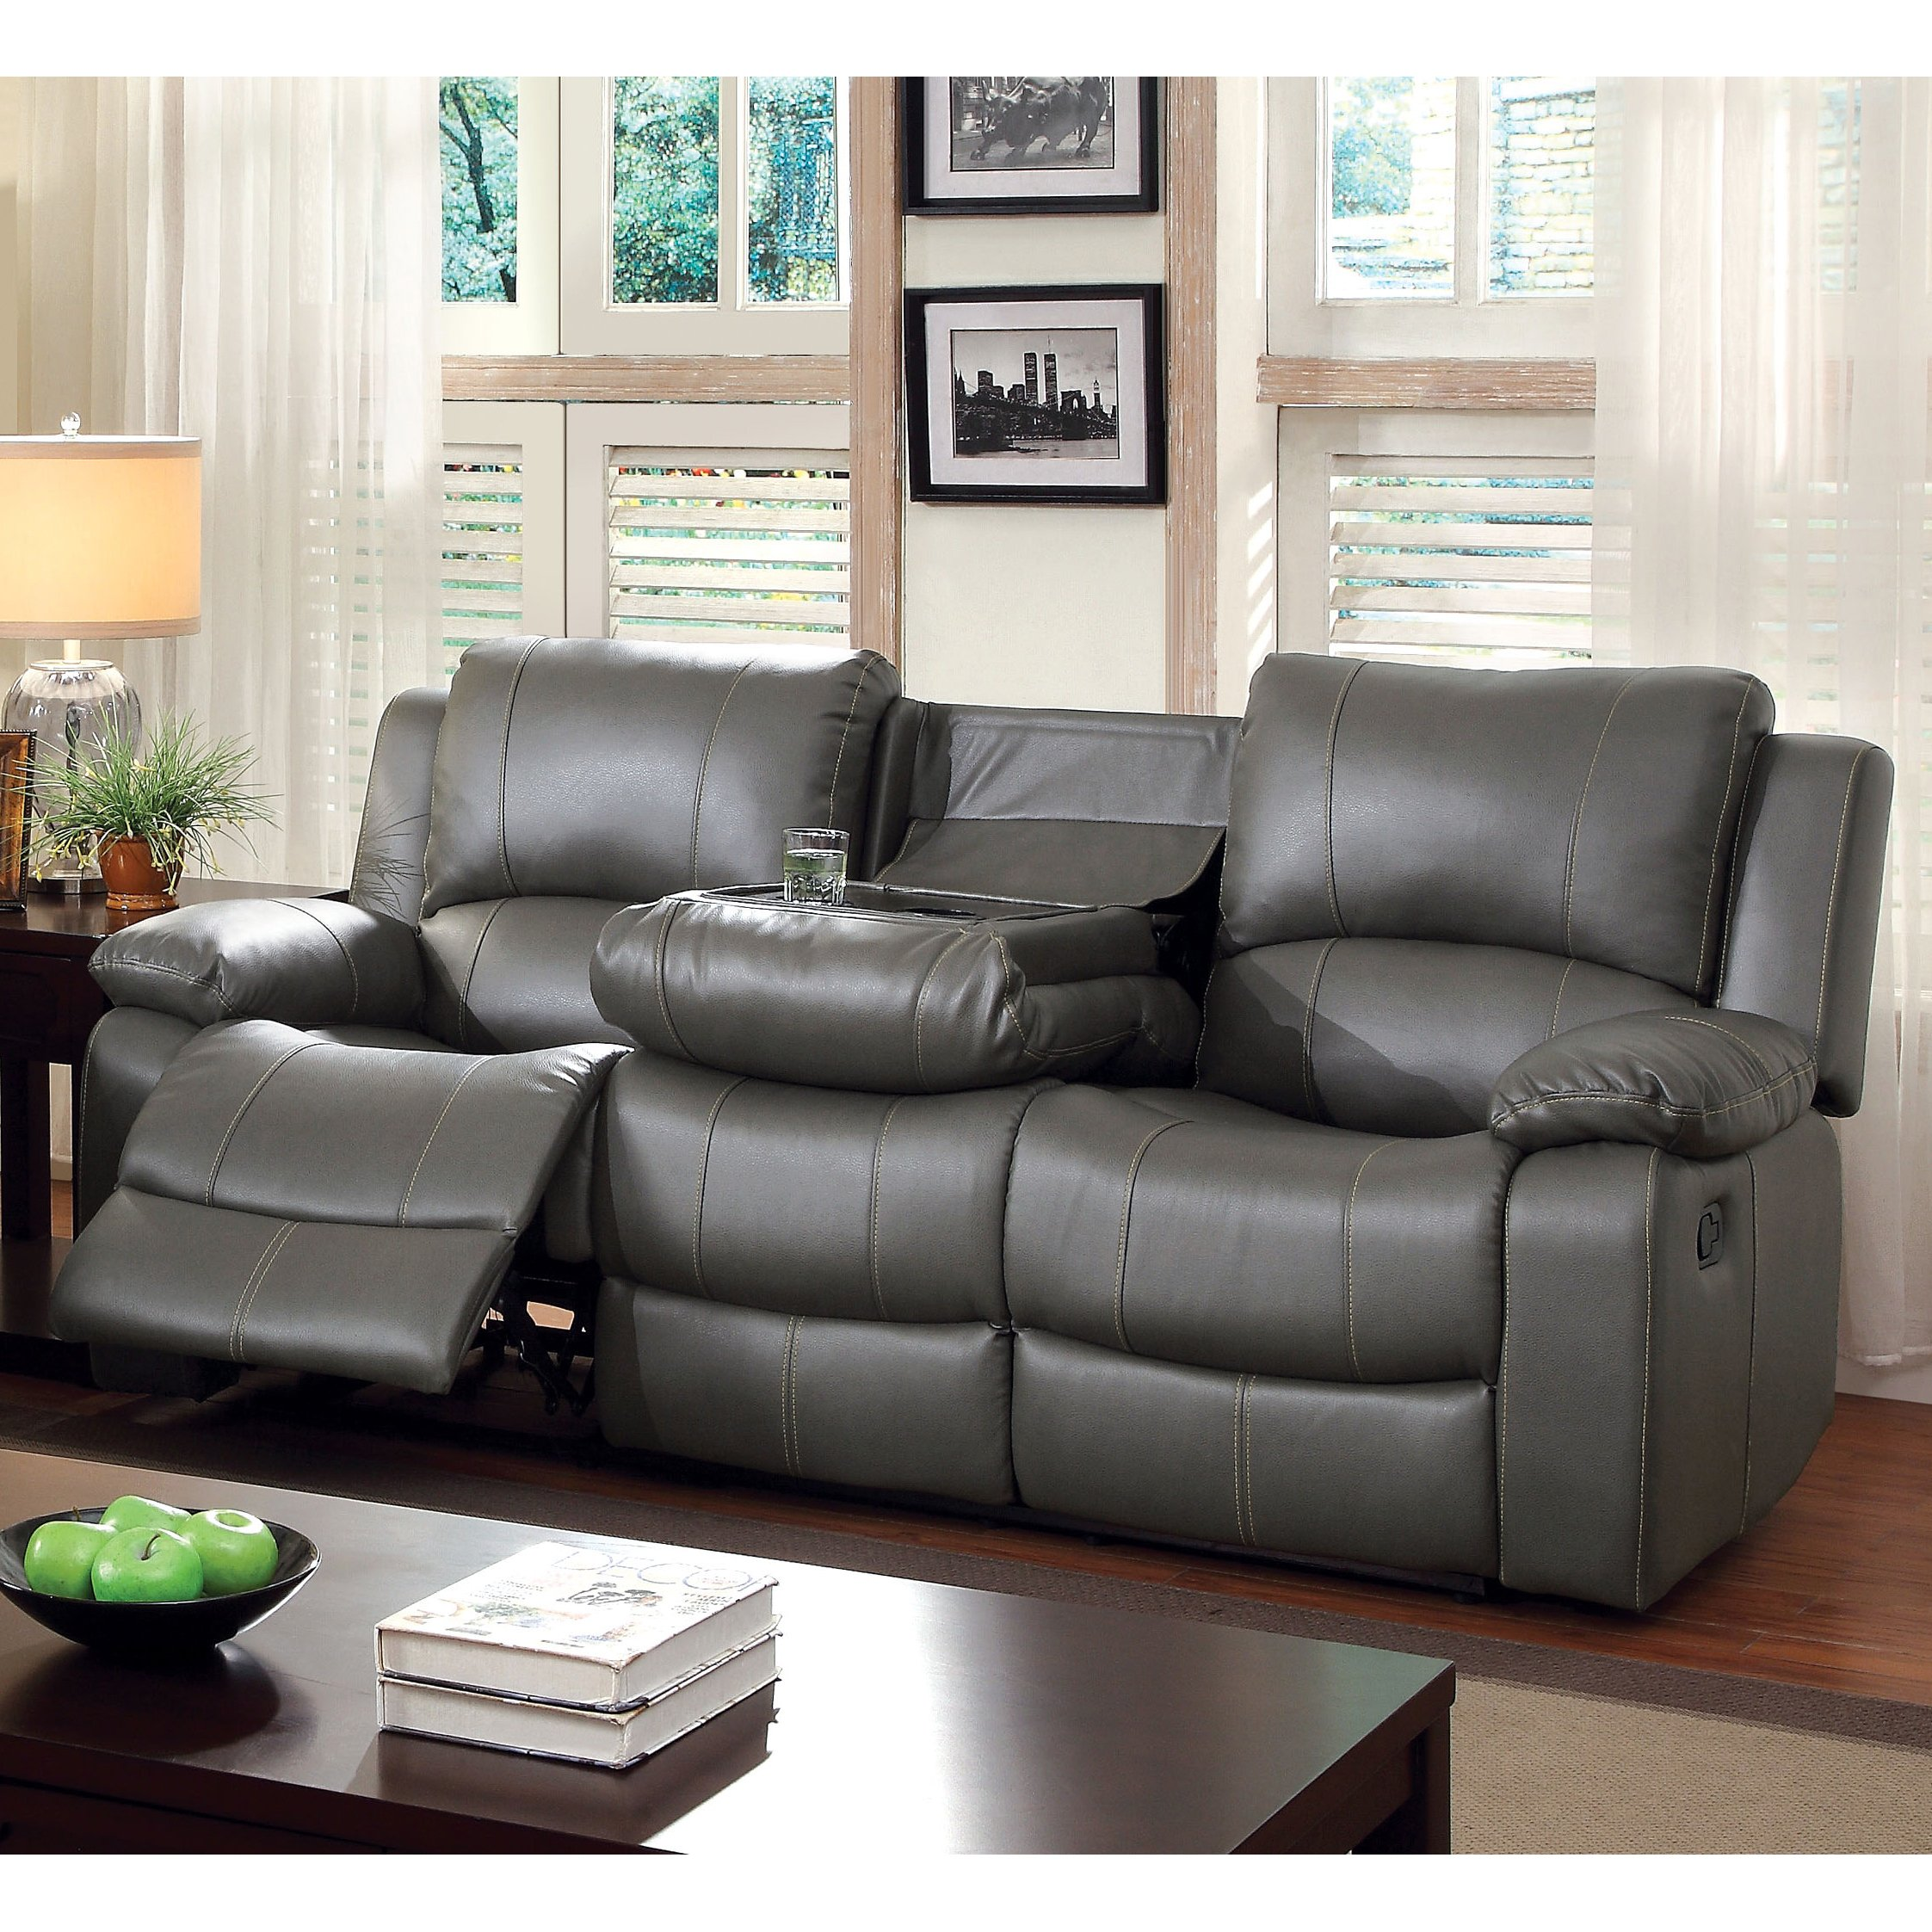 Shop Furniture of America Rembren Grey Faux Leather Reclining Sofa - Free  Shipping Today - Overstock - 9759548